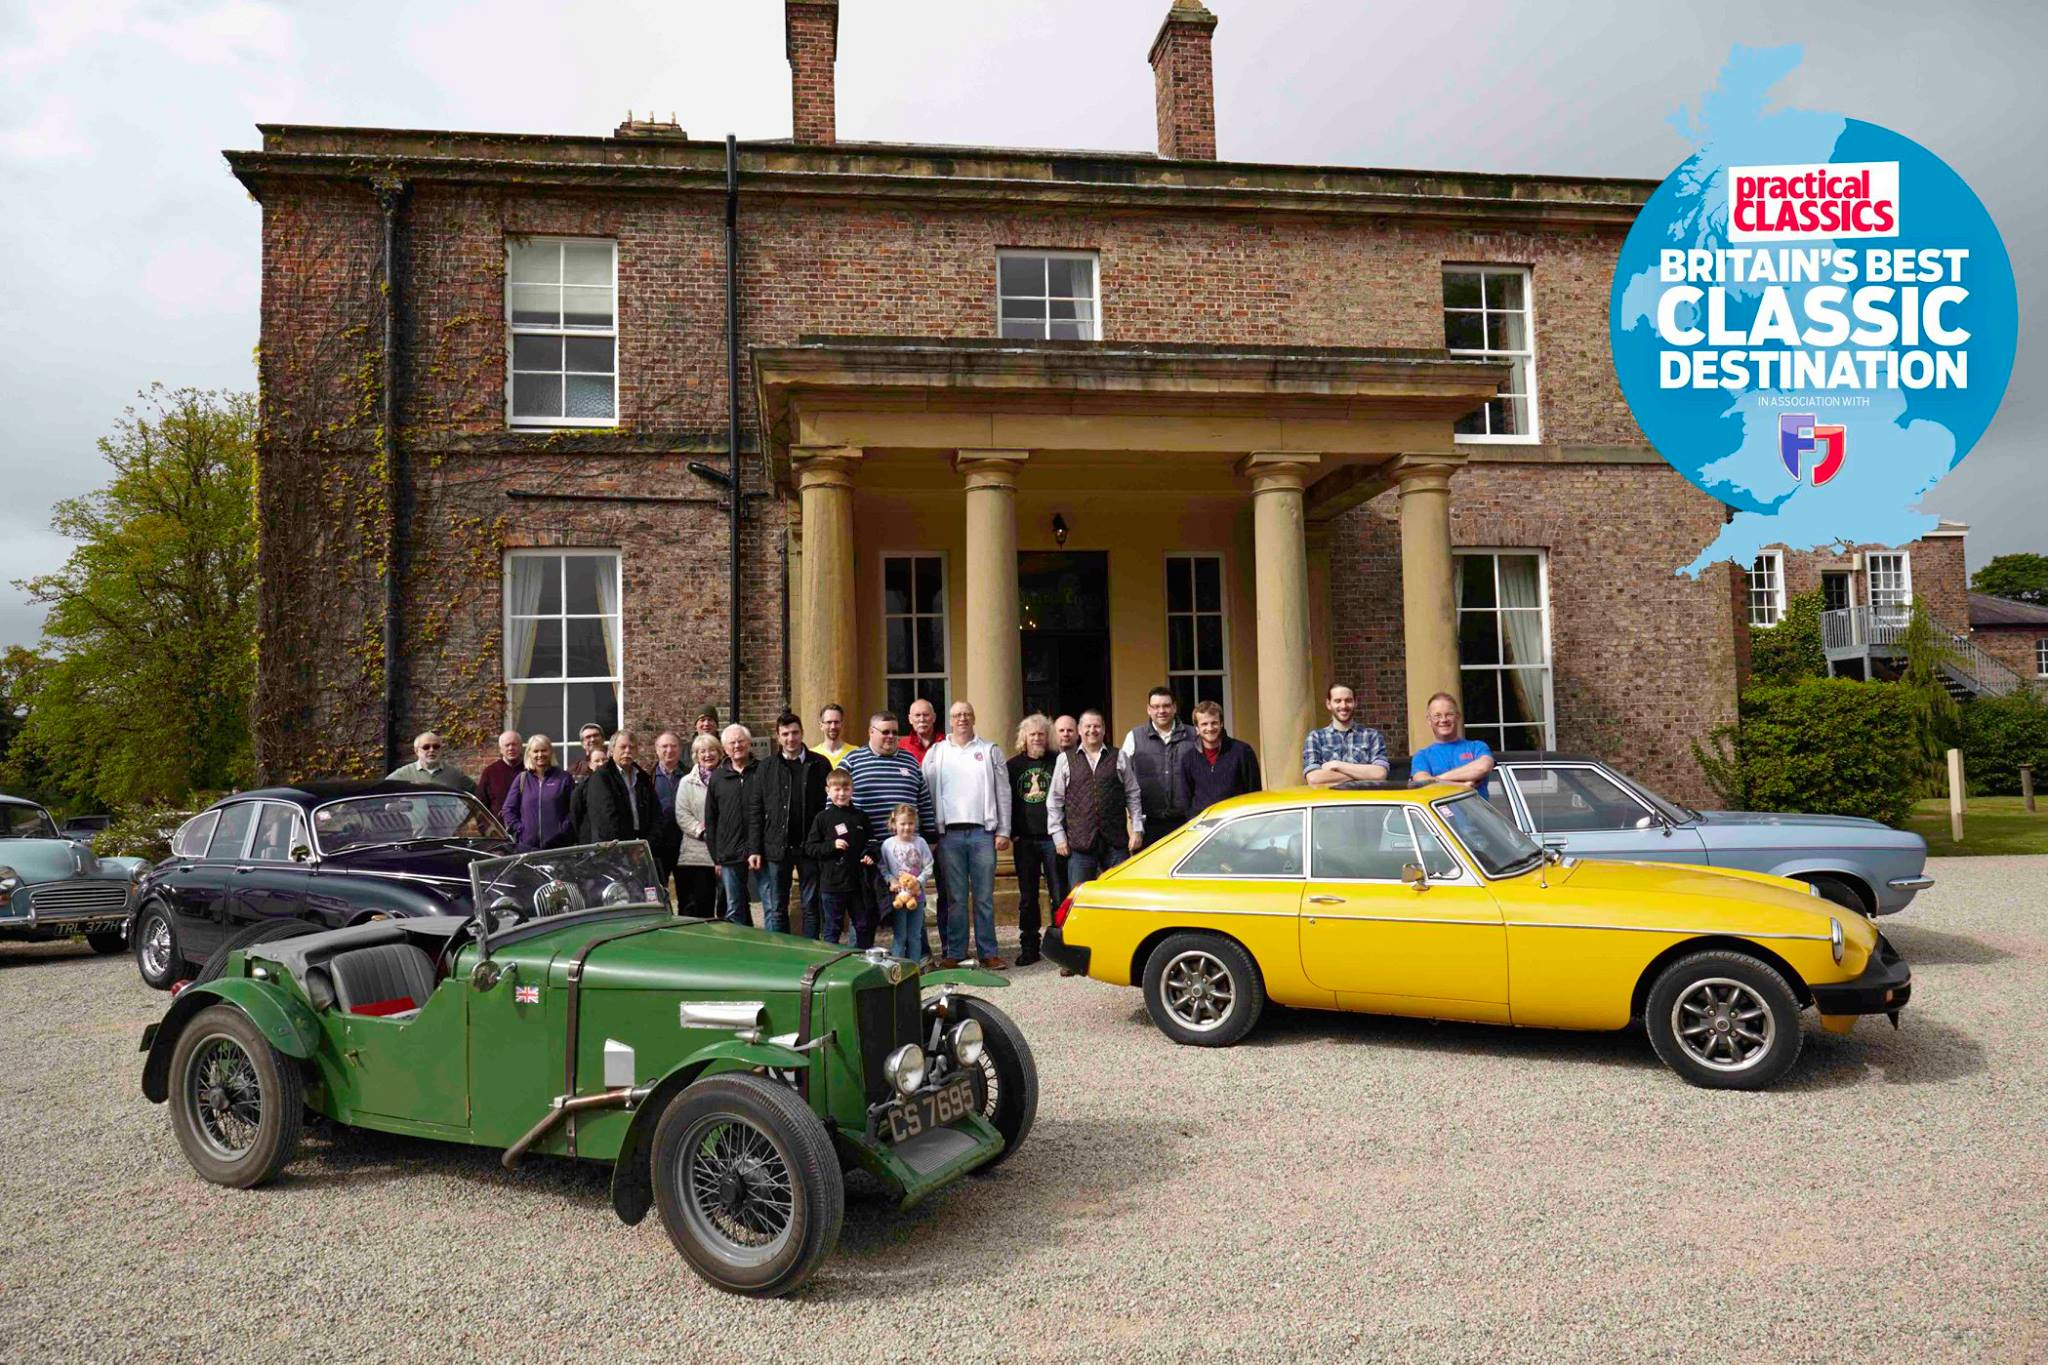 Britains Best Classic Destination with Practical Classics